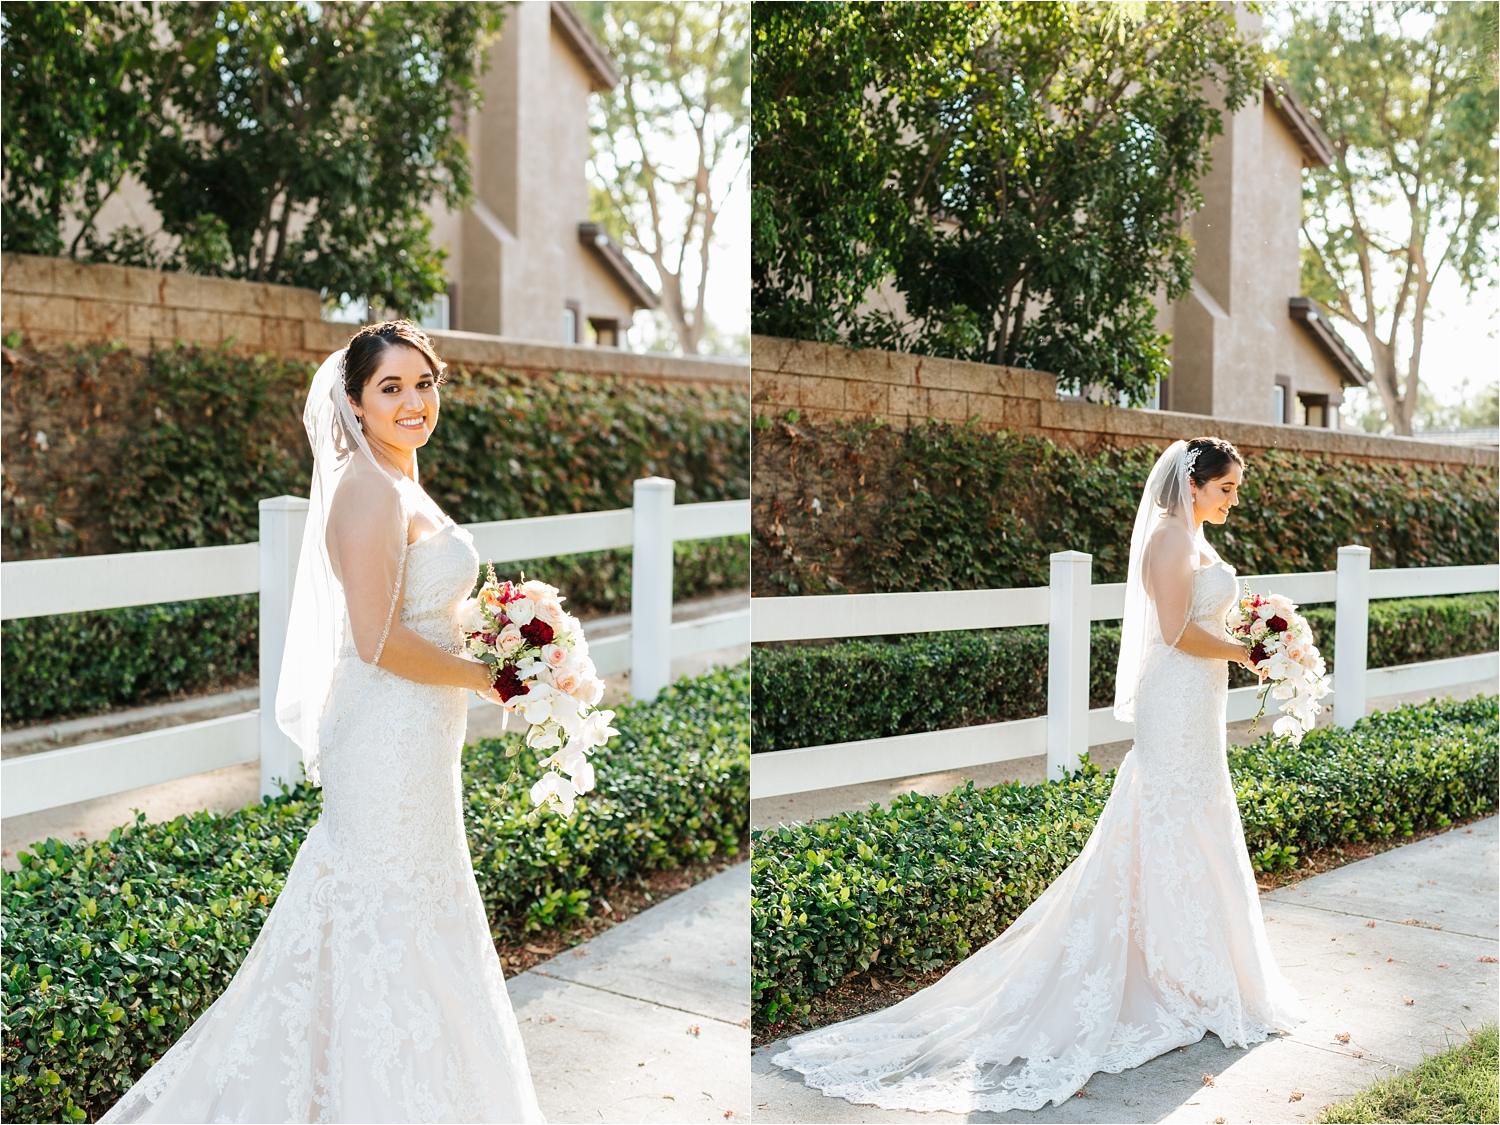 Beautiful bride in her wedding dress - https://brittneyhannonphotography.com